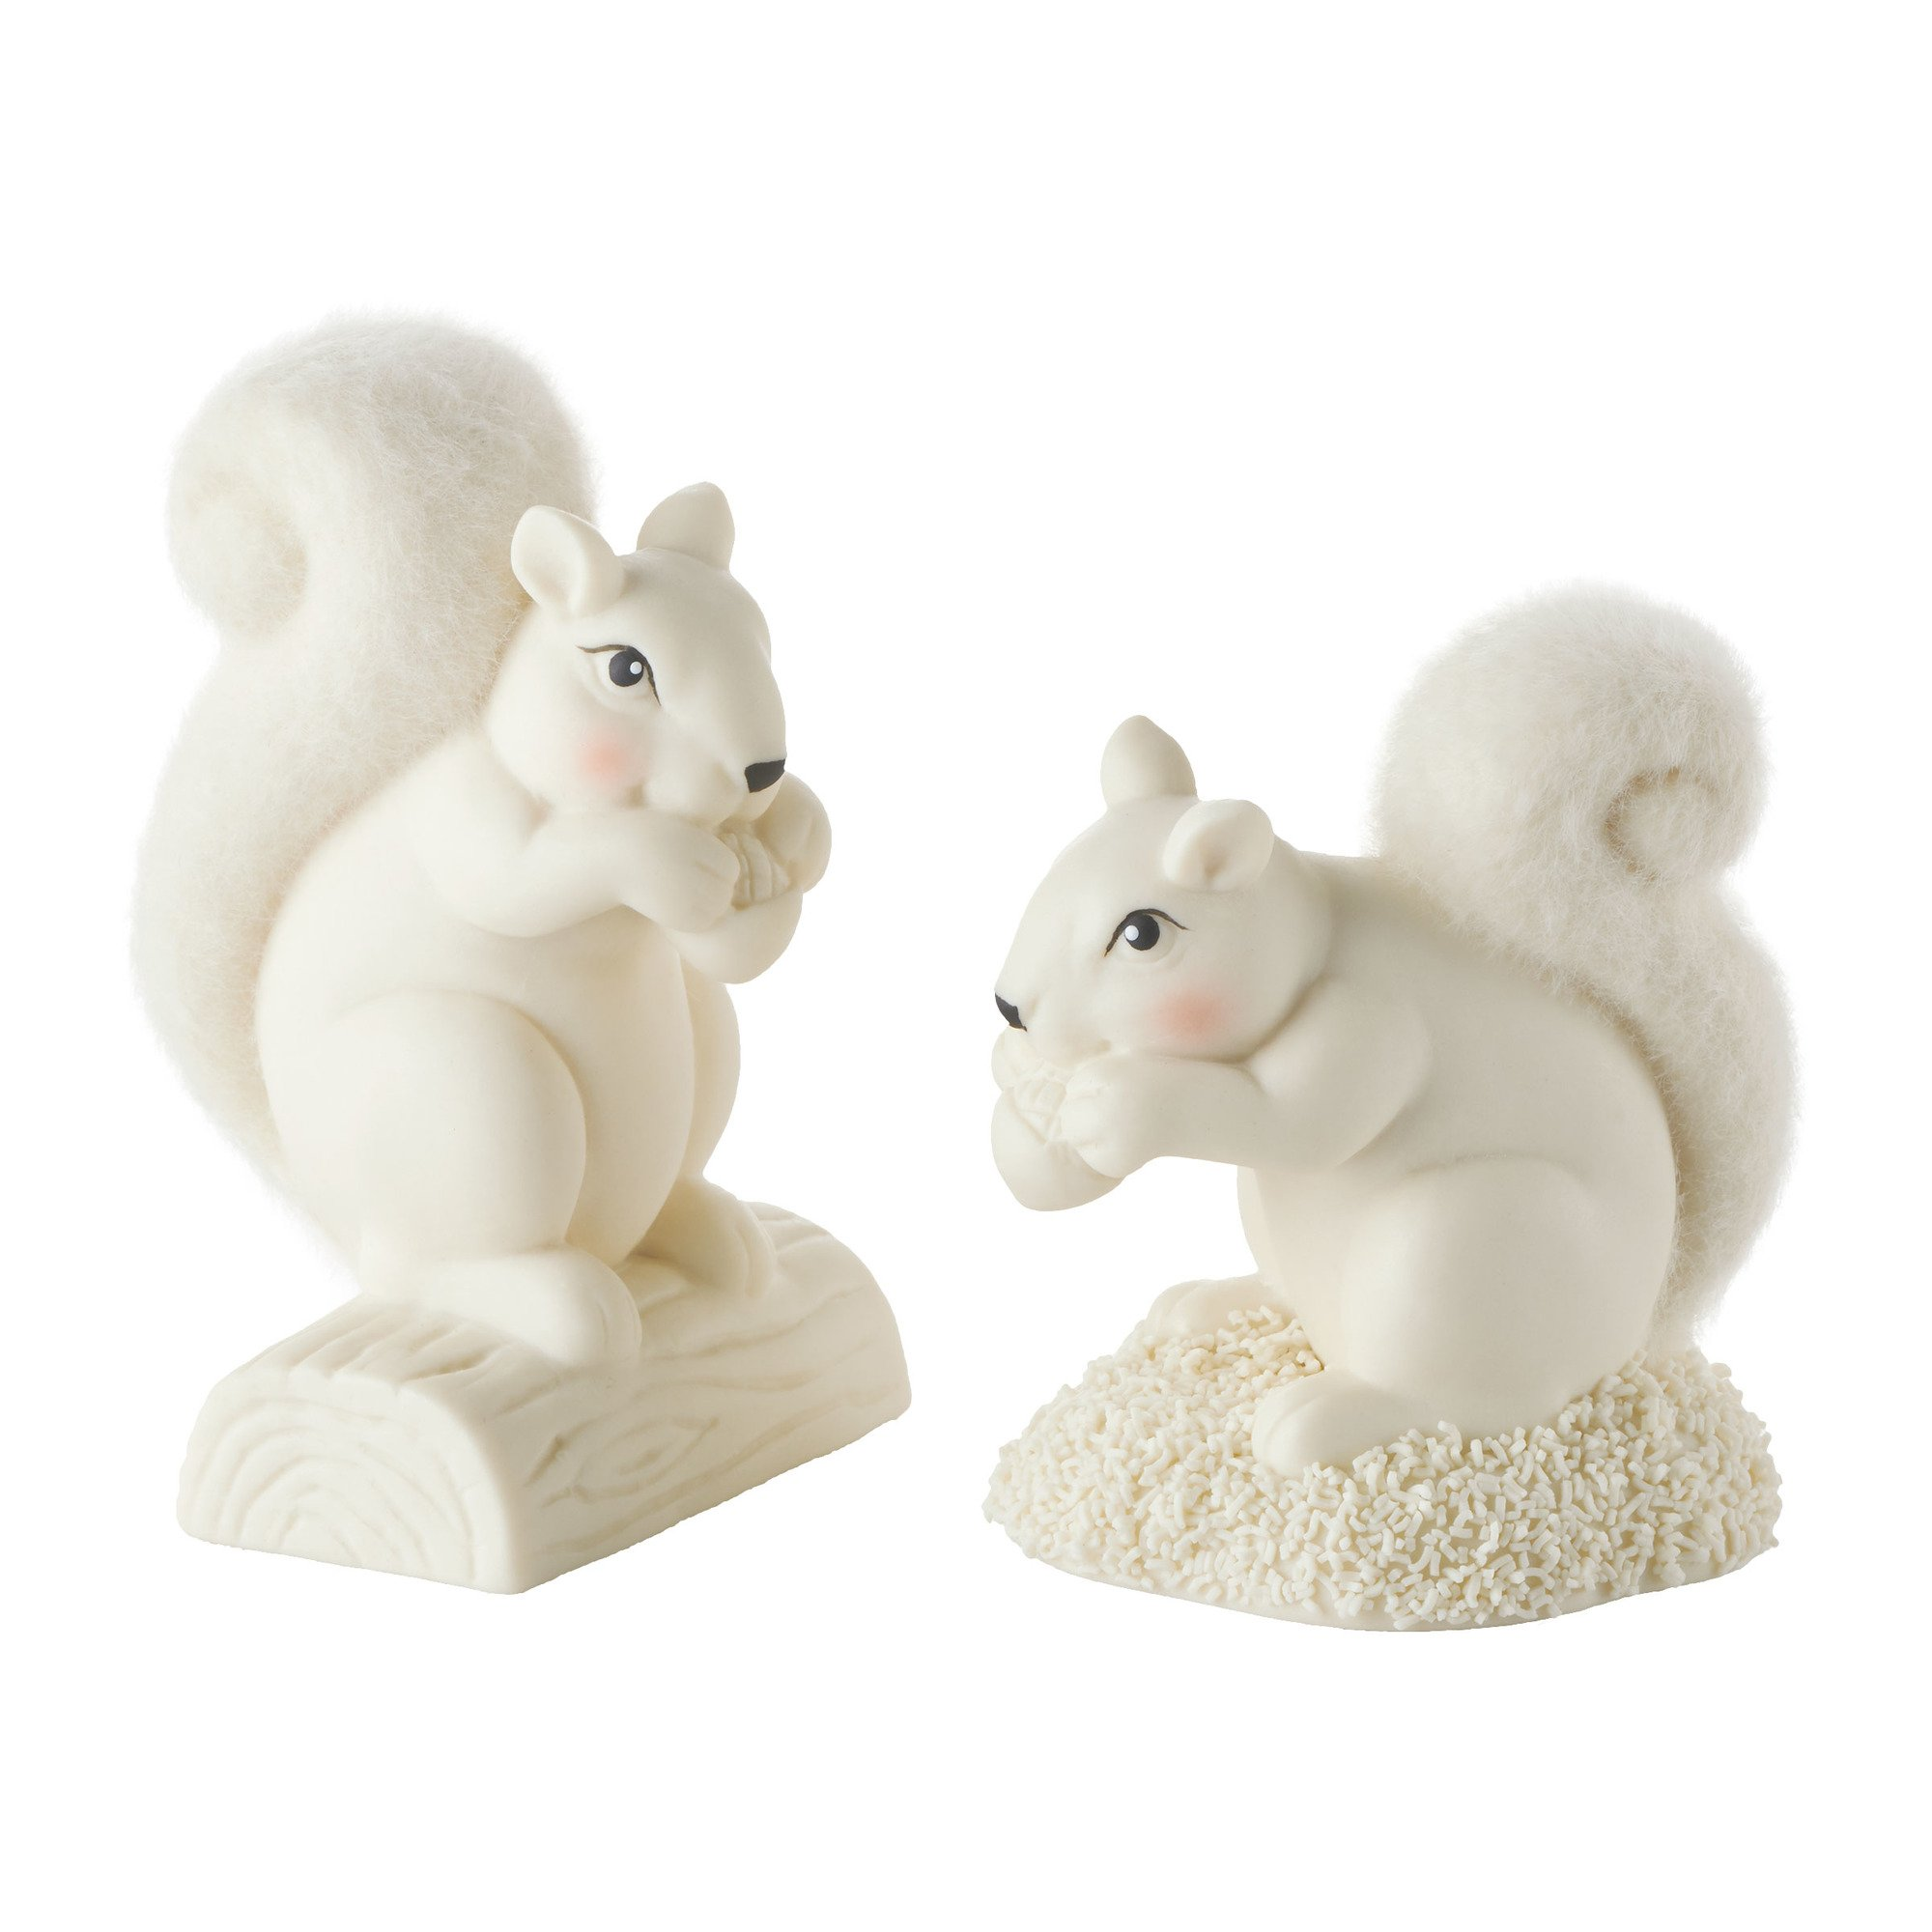 Squirrels Collectible Animal